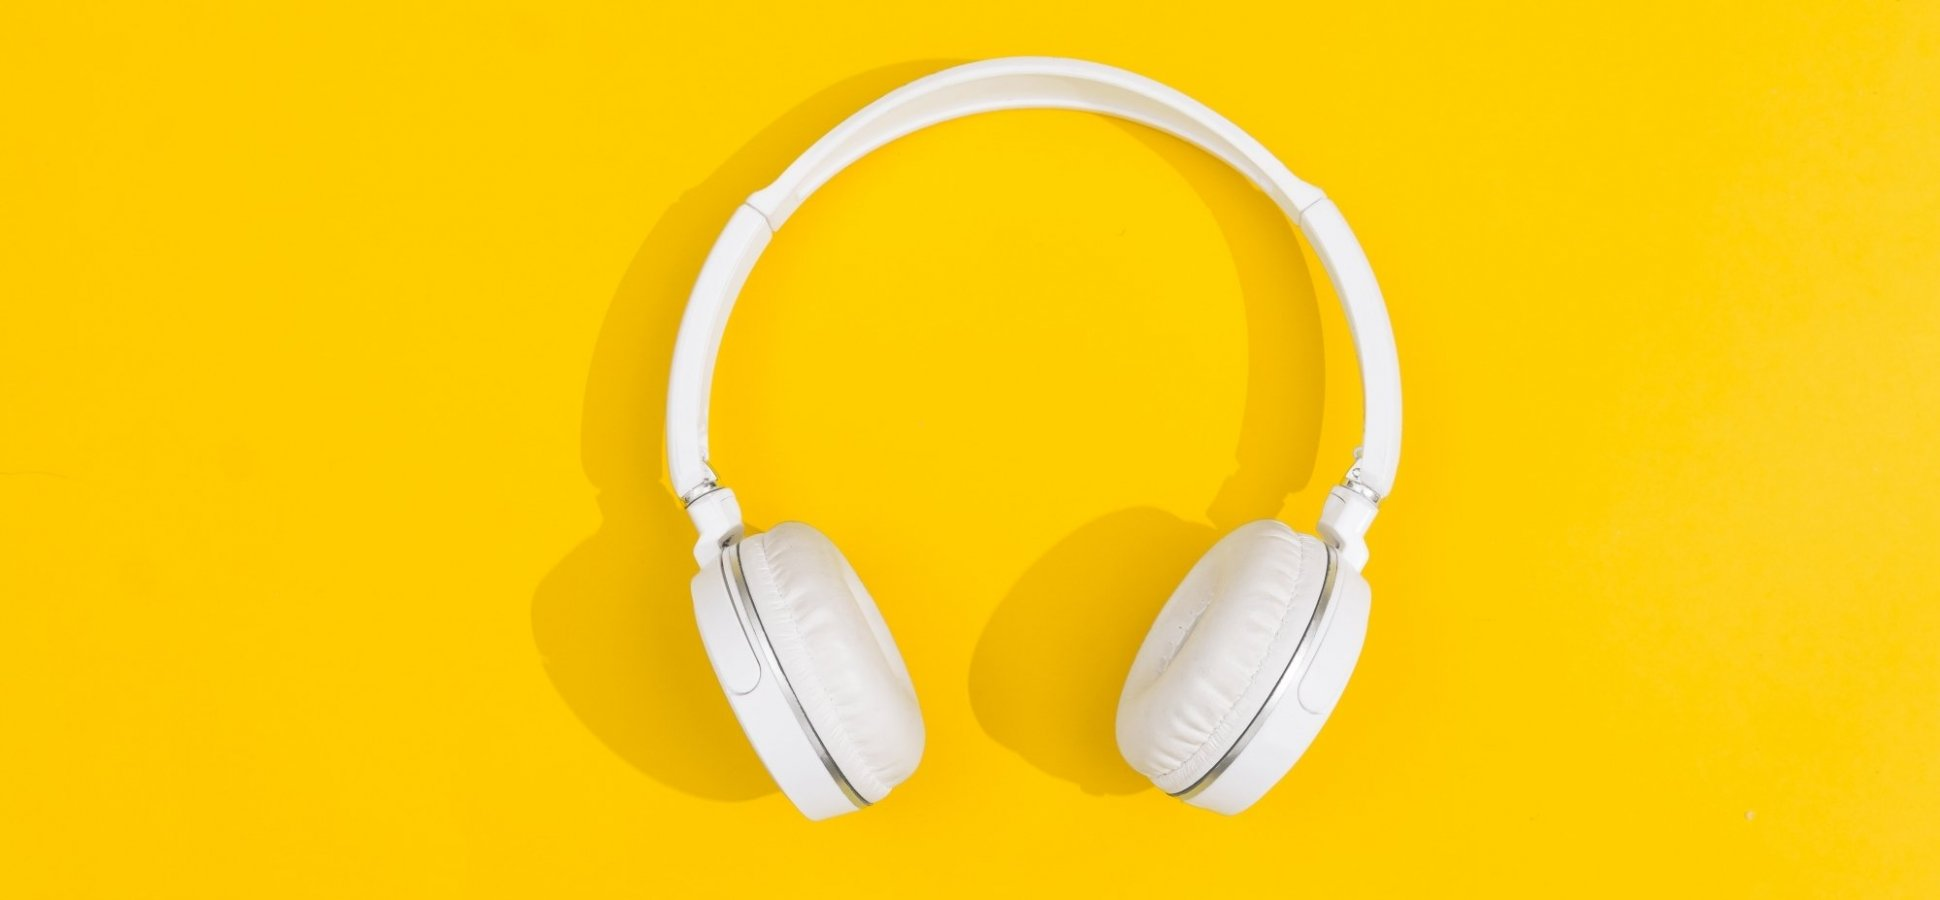 39 Songs that Incredibly Successful People Use to Train their Brains